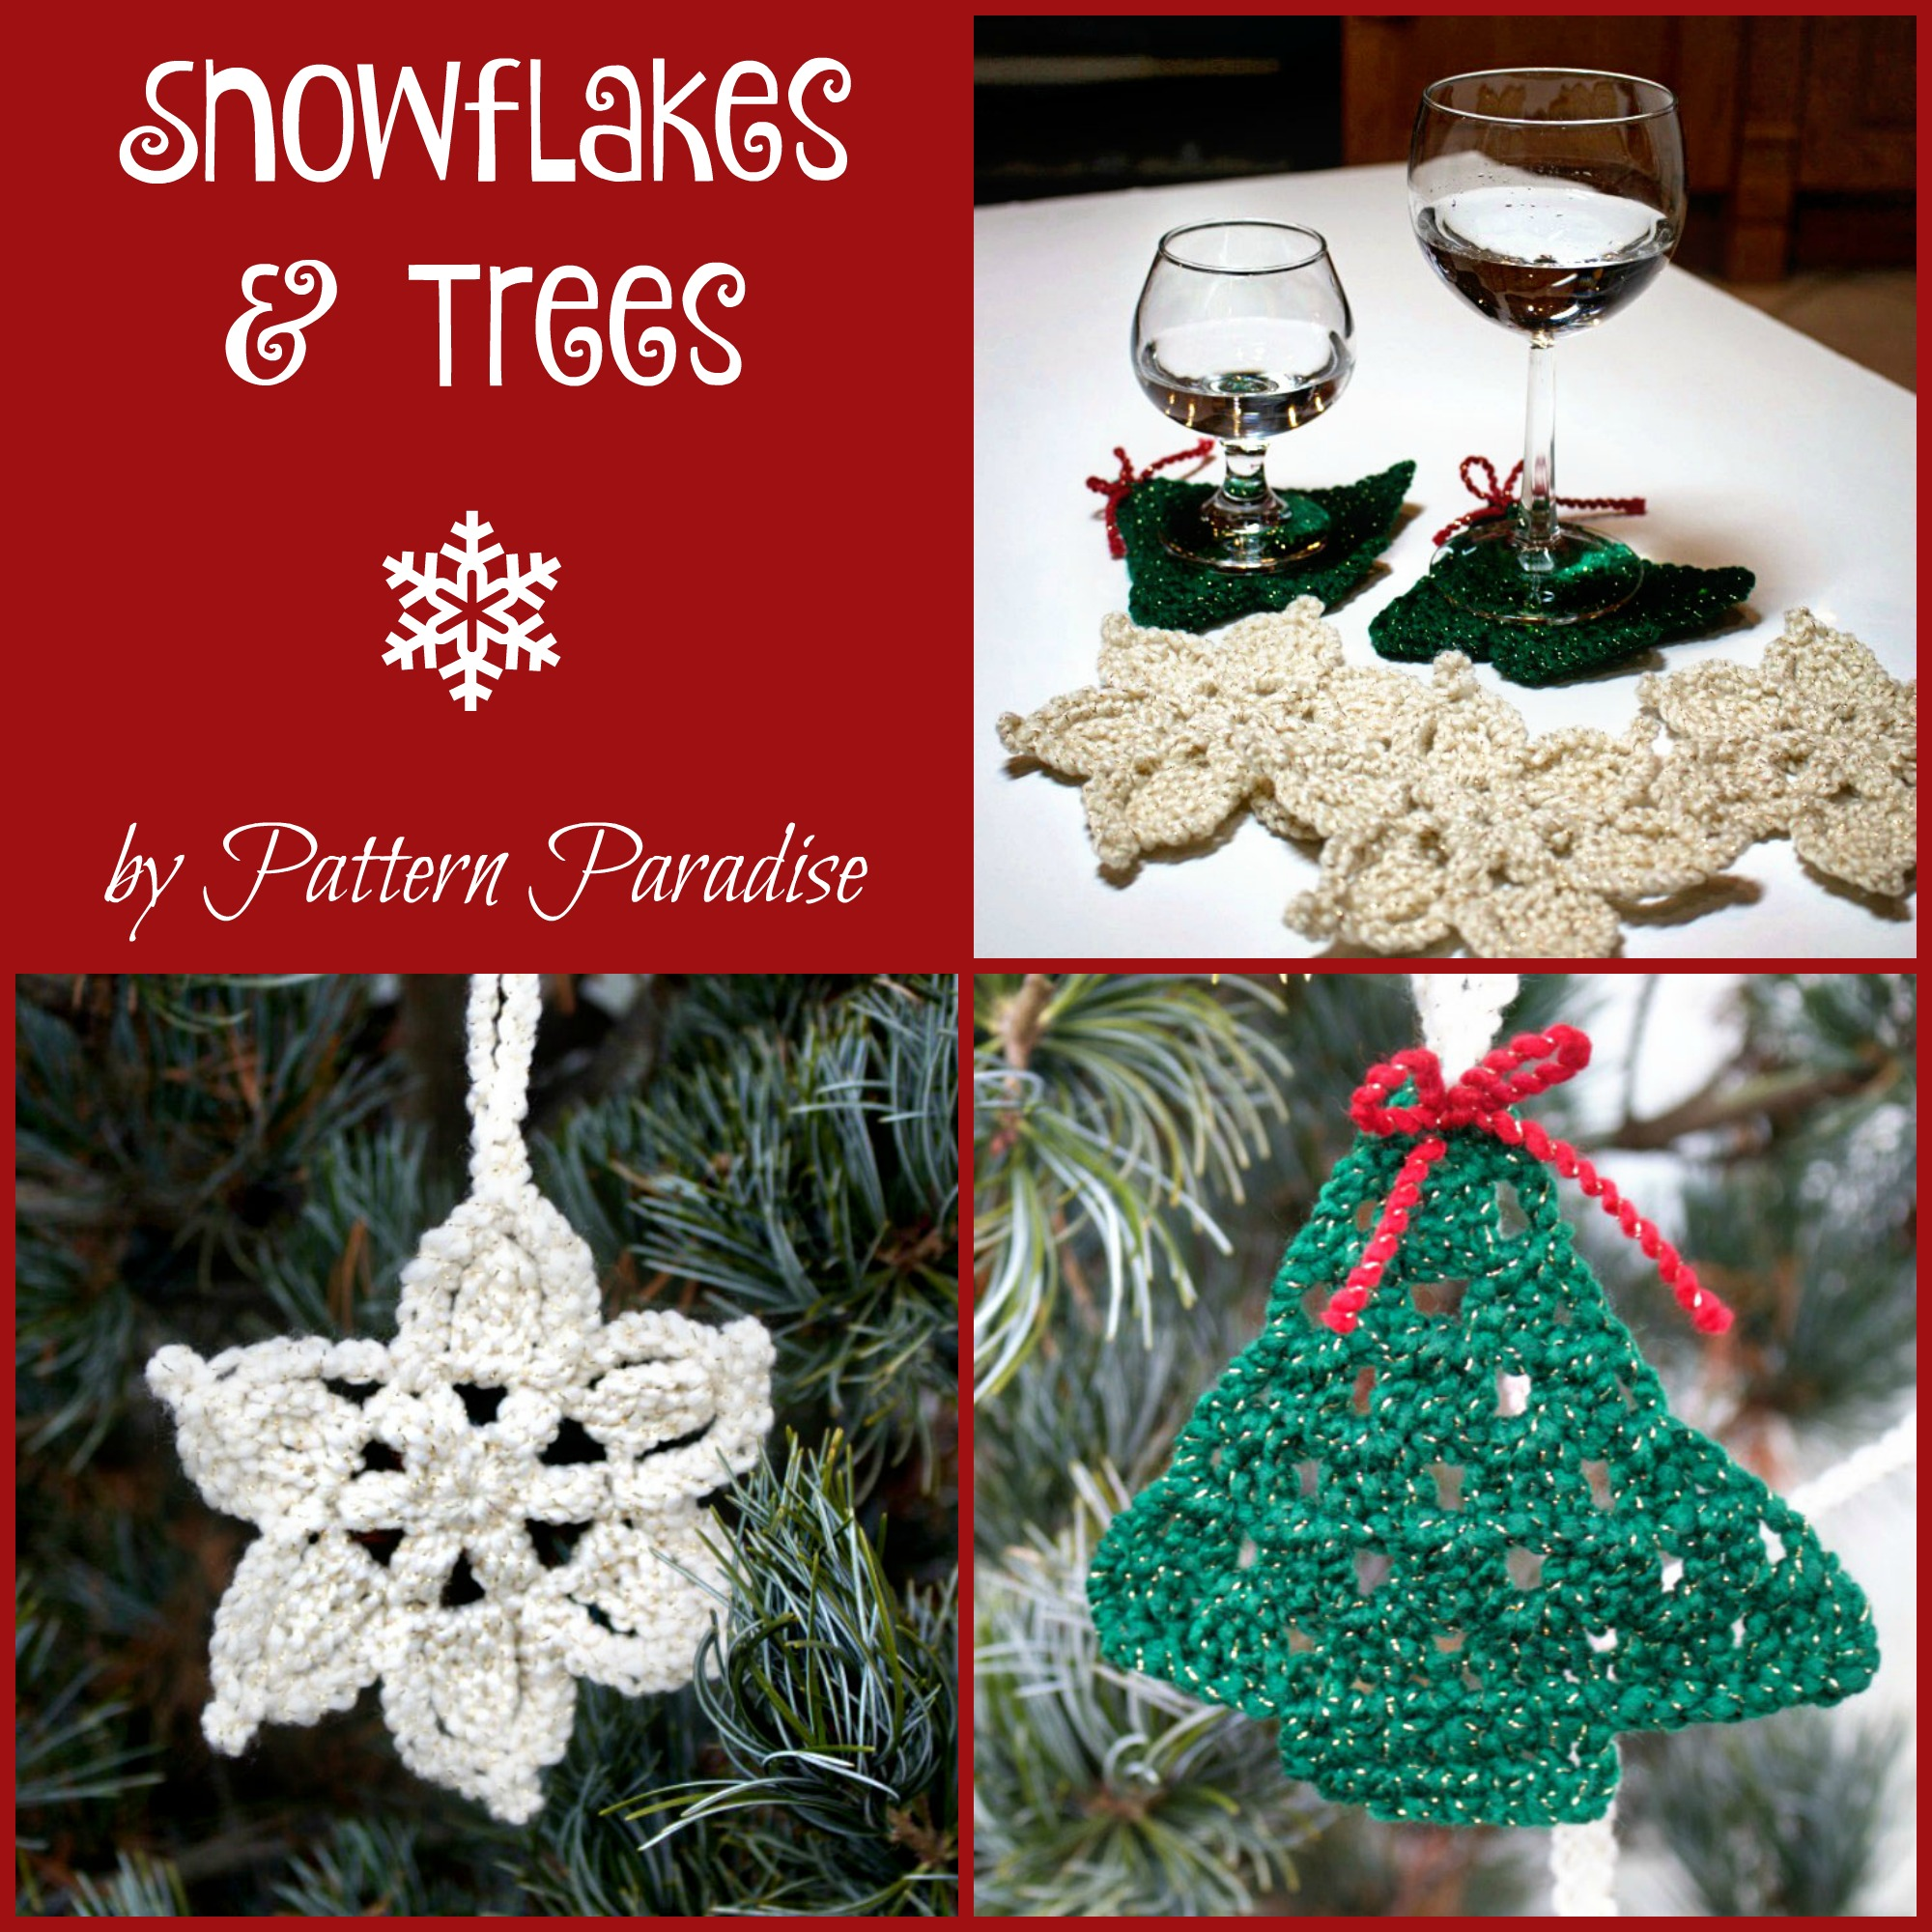 Free crochet pattern snowflakes trees coasters garland snowflakes and trees by pattern paradise bankloansurffo Choice Image